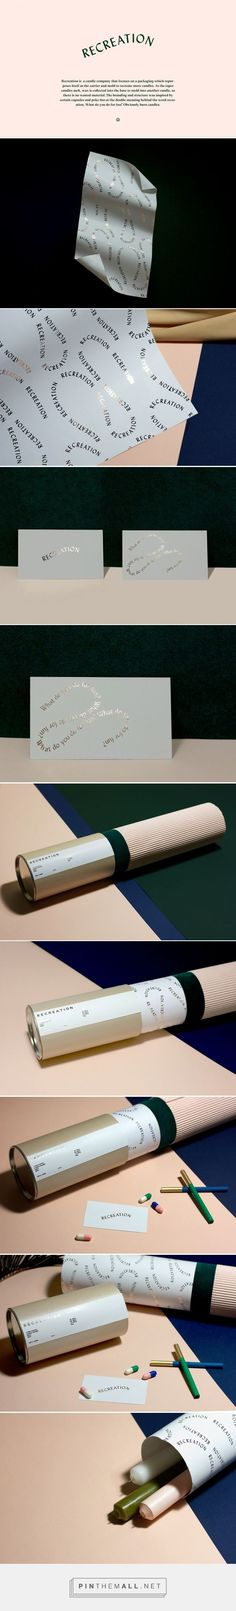 Recreation branding #foil #identity #stationery